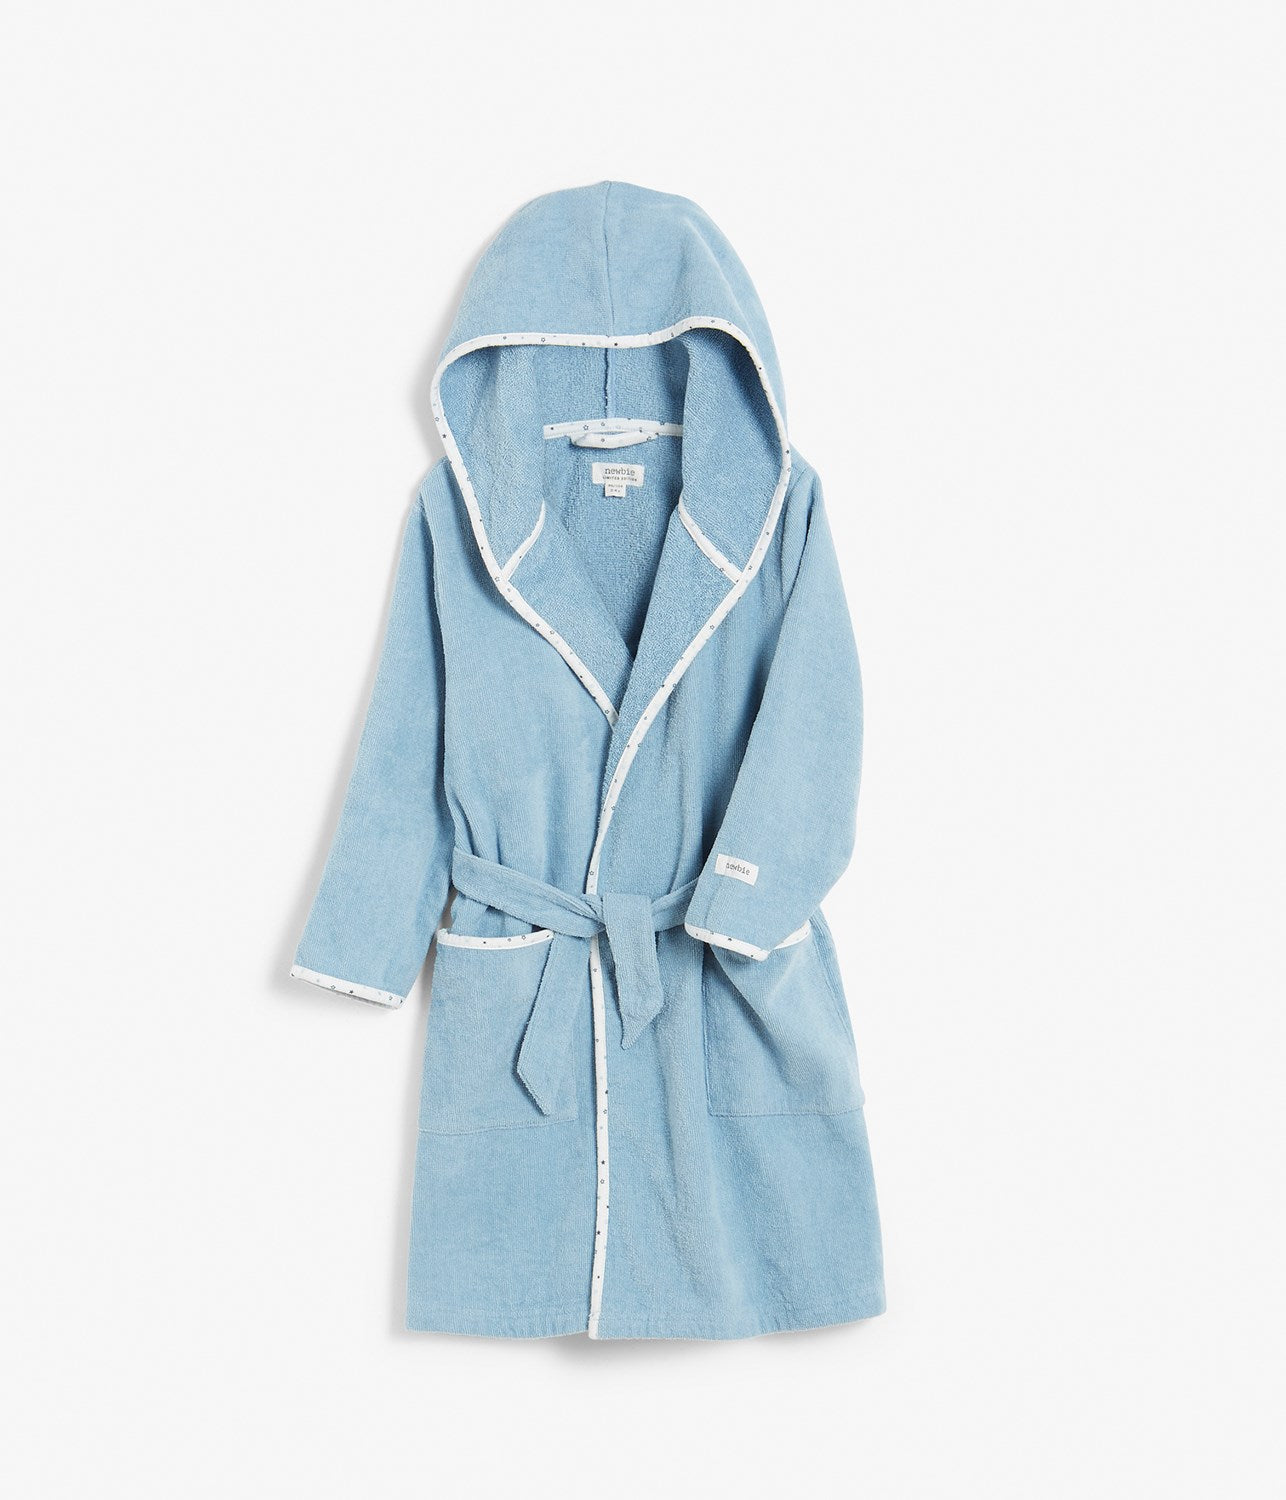 Kids Limited terry bath robe